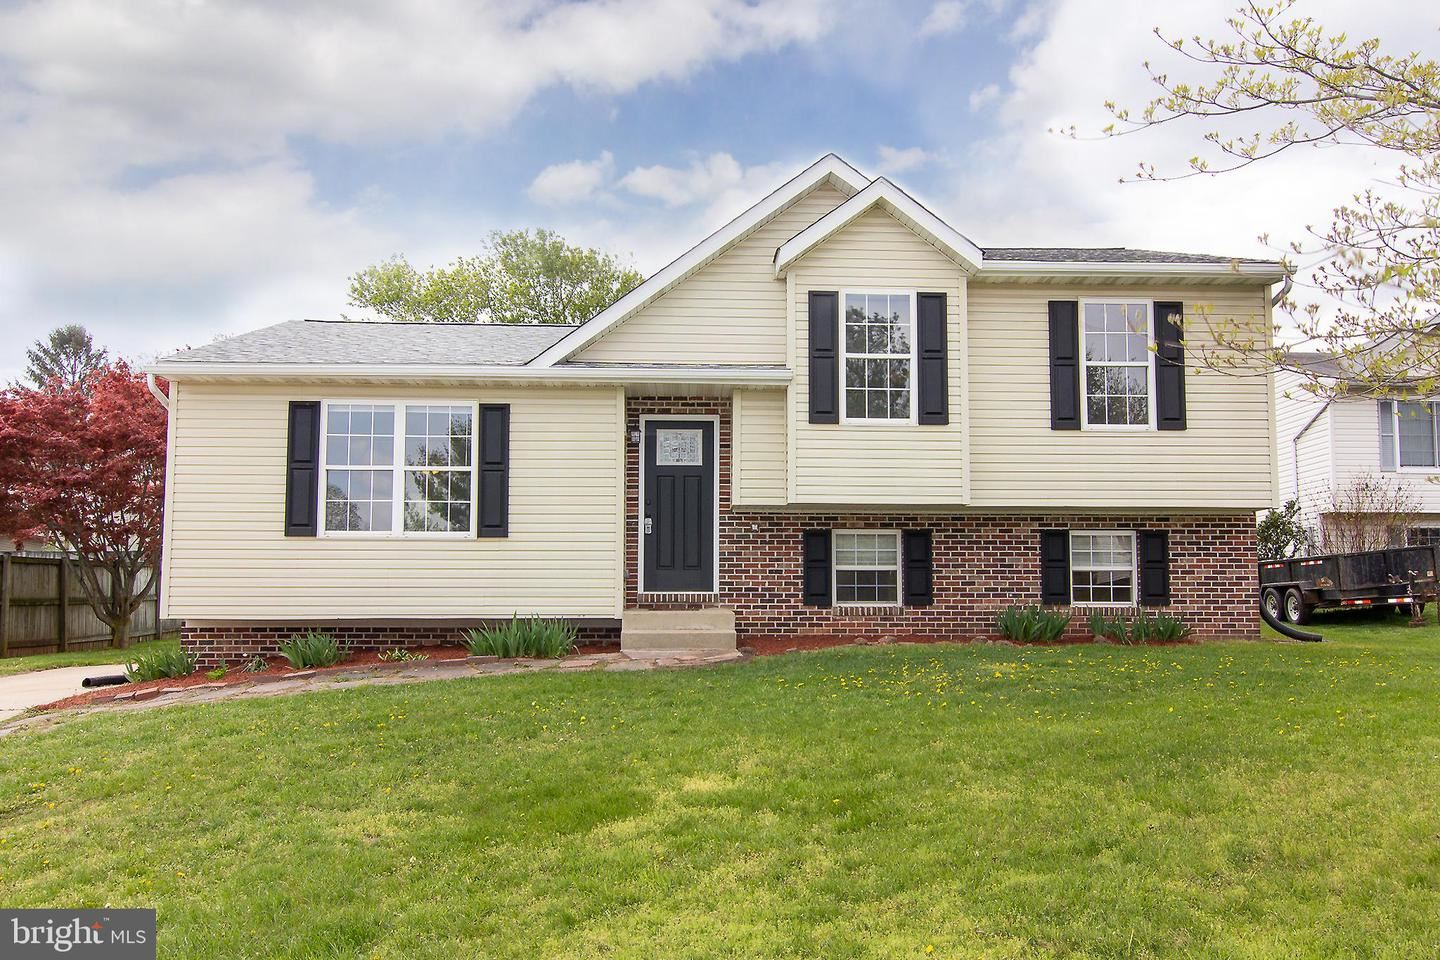 176 BLARNEY CT, Taneytown, MD 21787 - MLS#: MDCR203582